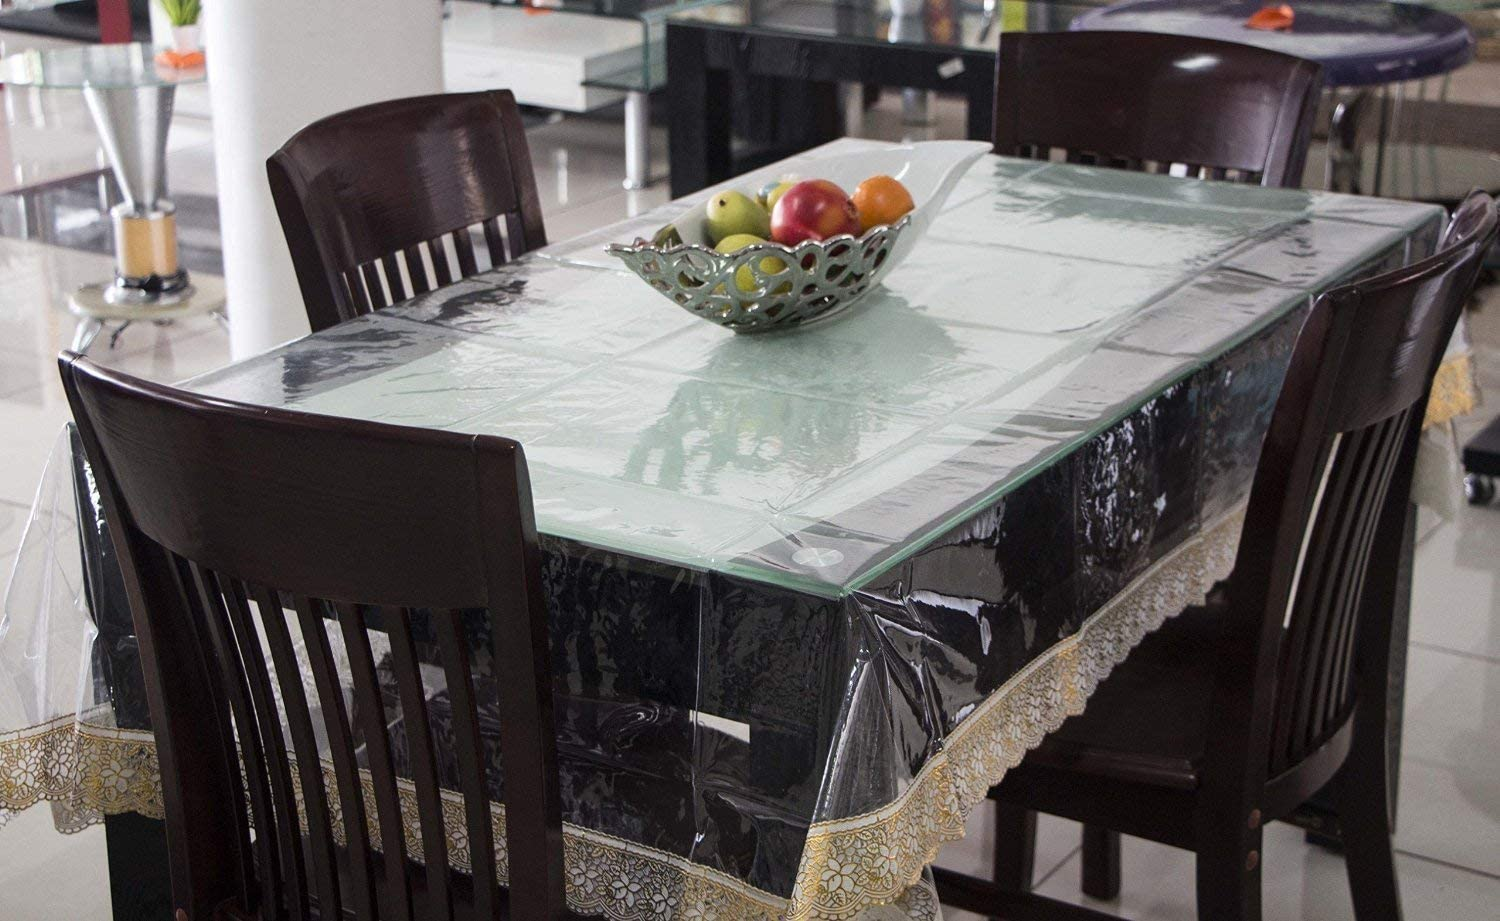 M'Sung Heat Resistant Easy Denver Mall Clean C Tablecloth Plastic Sale Special Price Waterproof